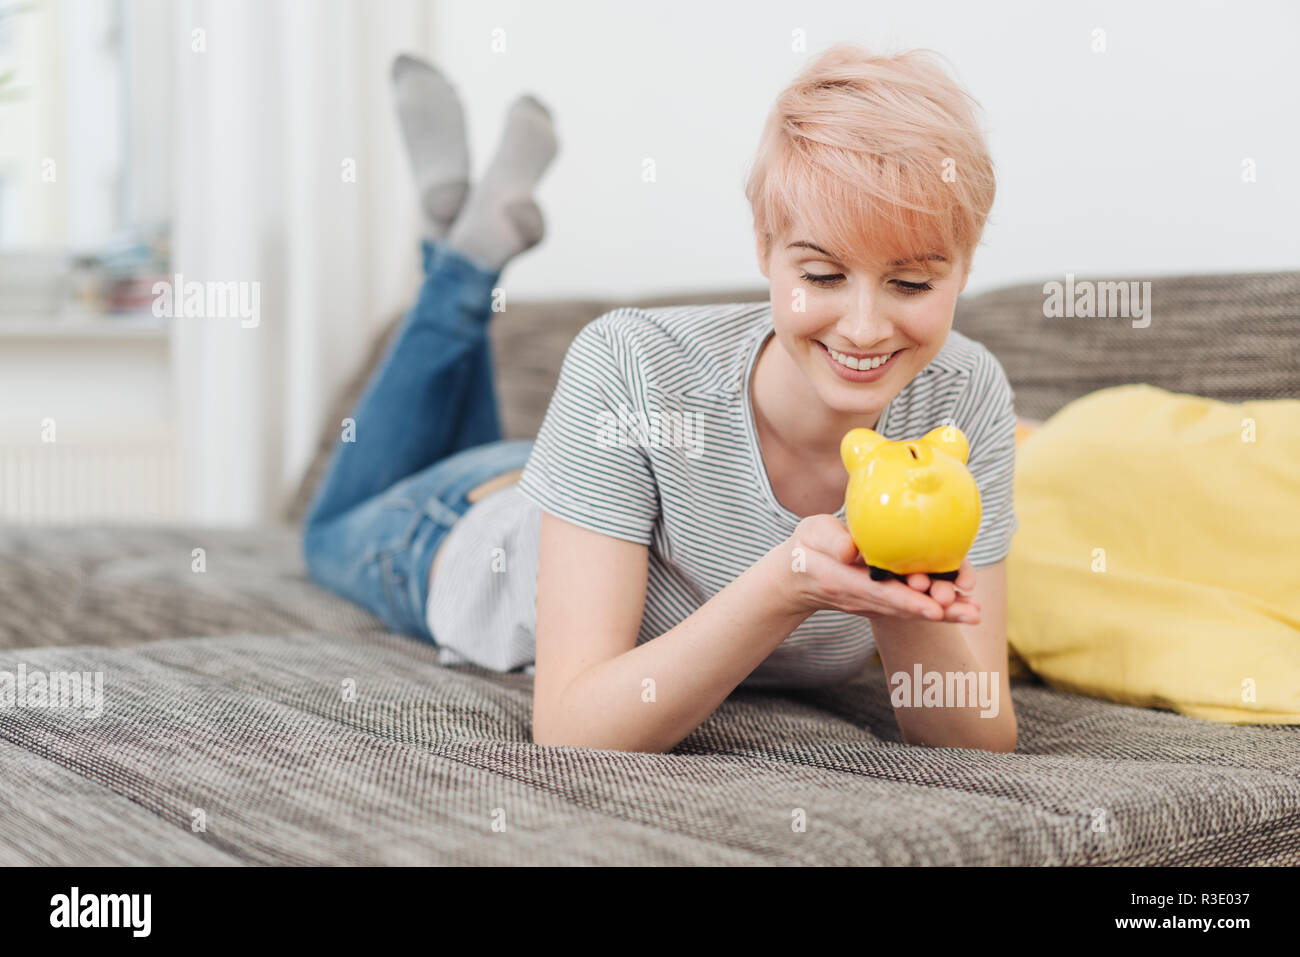 Cheerful young woman holding her piggy bank looking at it with a smile as she imagines what she can do with her savings as she lies on a sofa at home - Stock Image